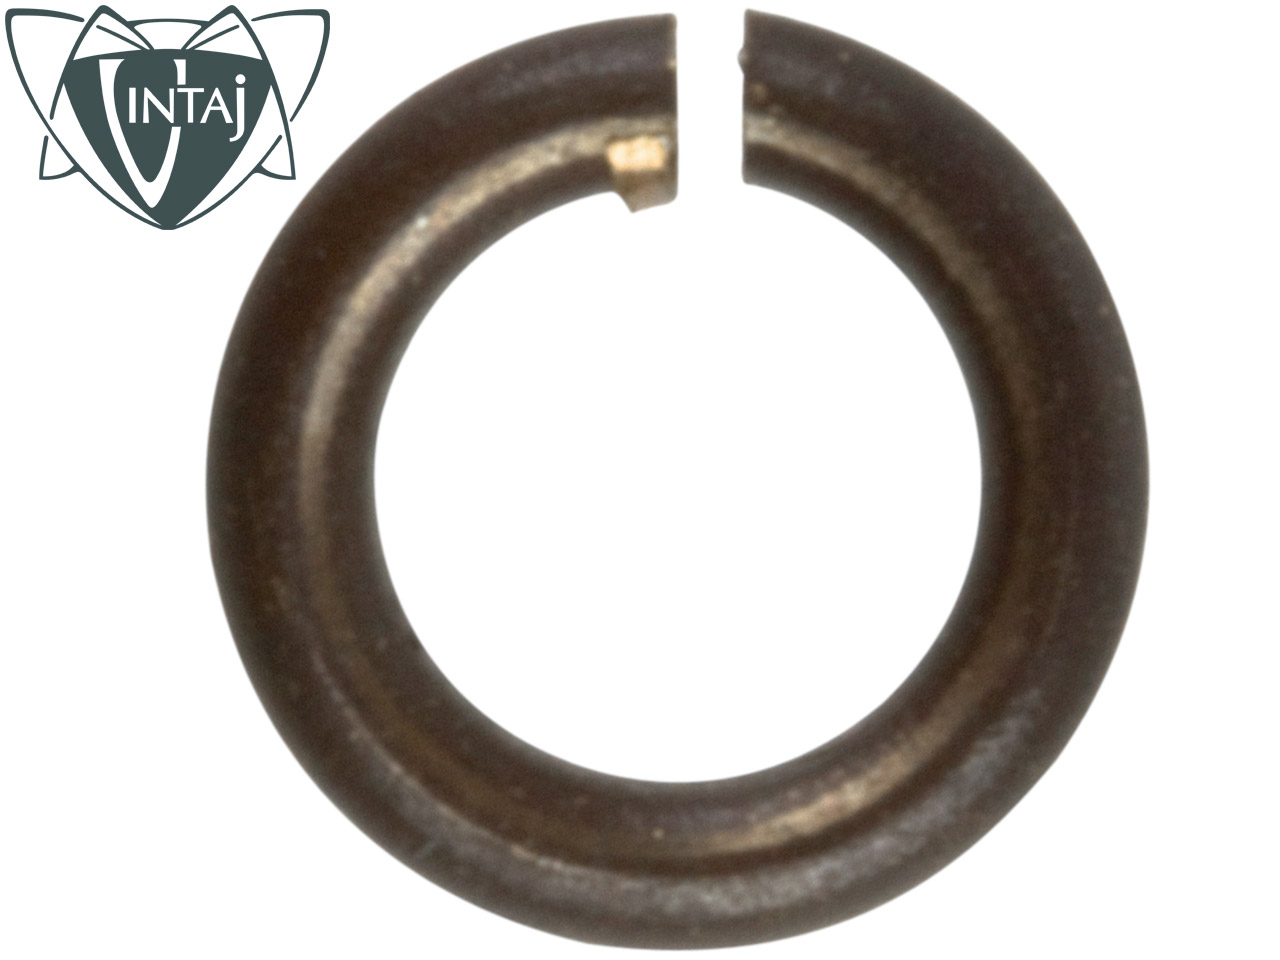 Vintaj Brass Jump Rings 4.75mm Pack of 24